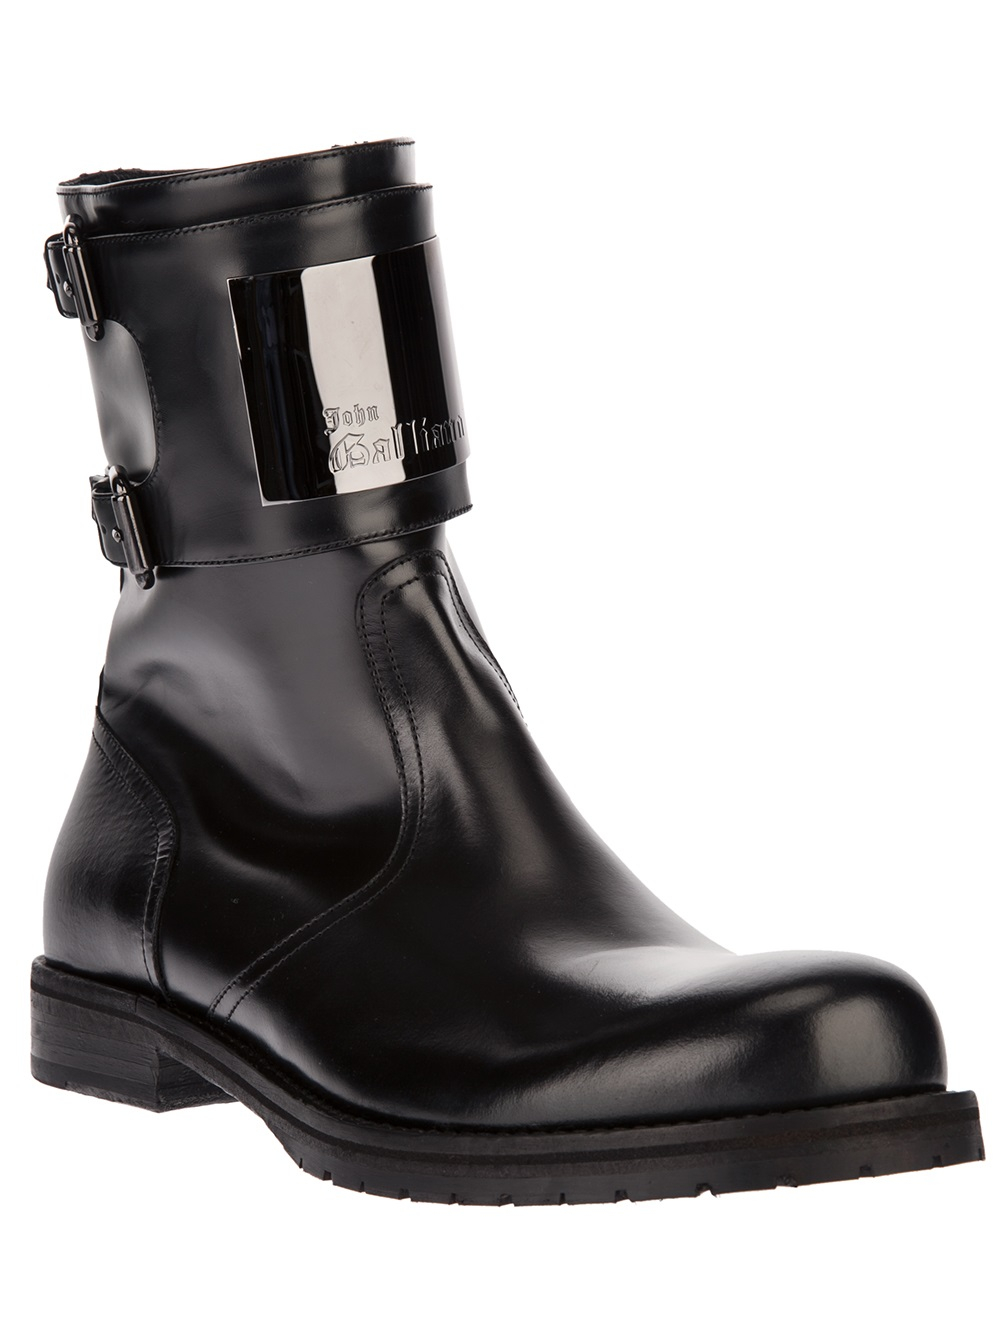 Double Buckled Ankle Boots